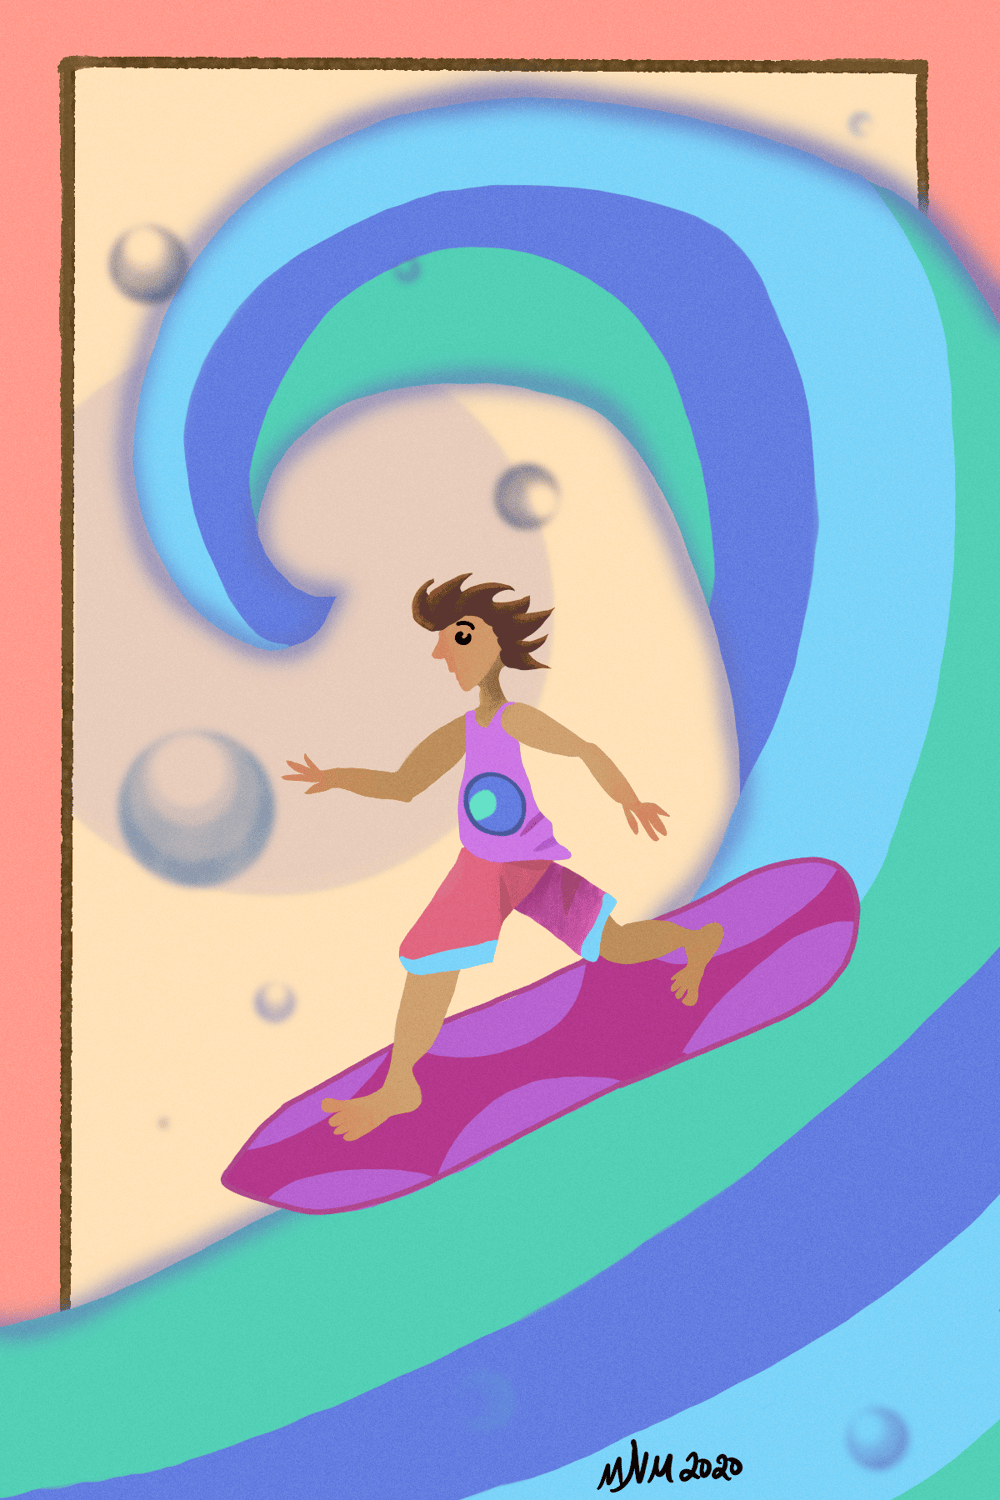 Surfer dude - image 1 - student project